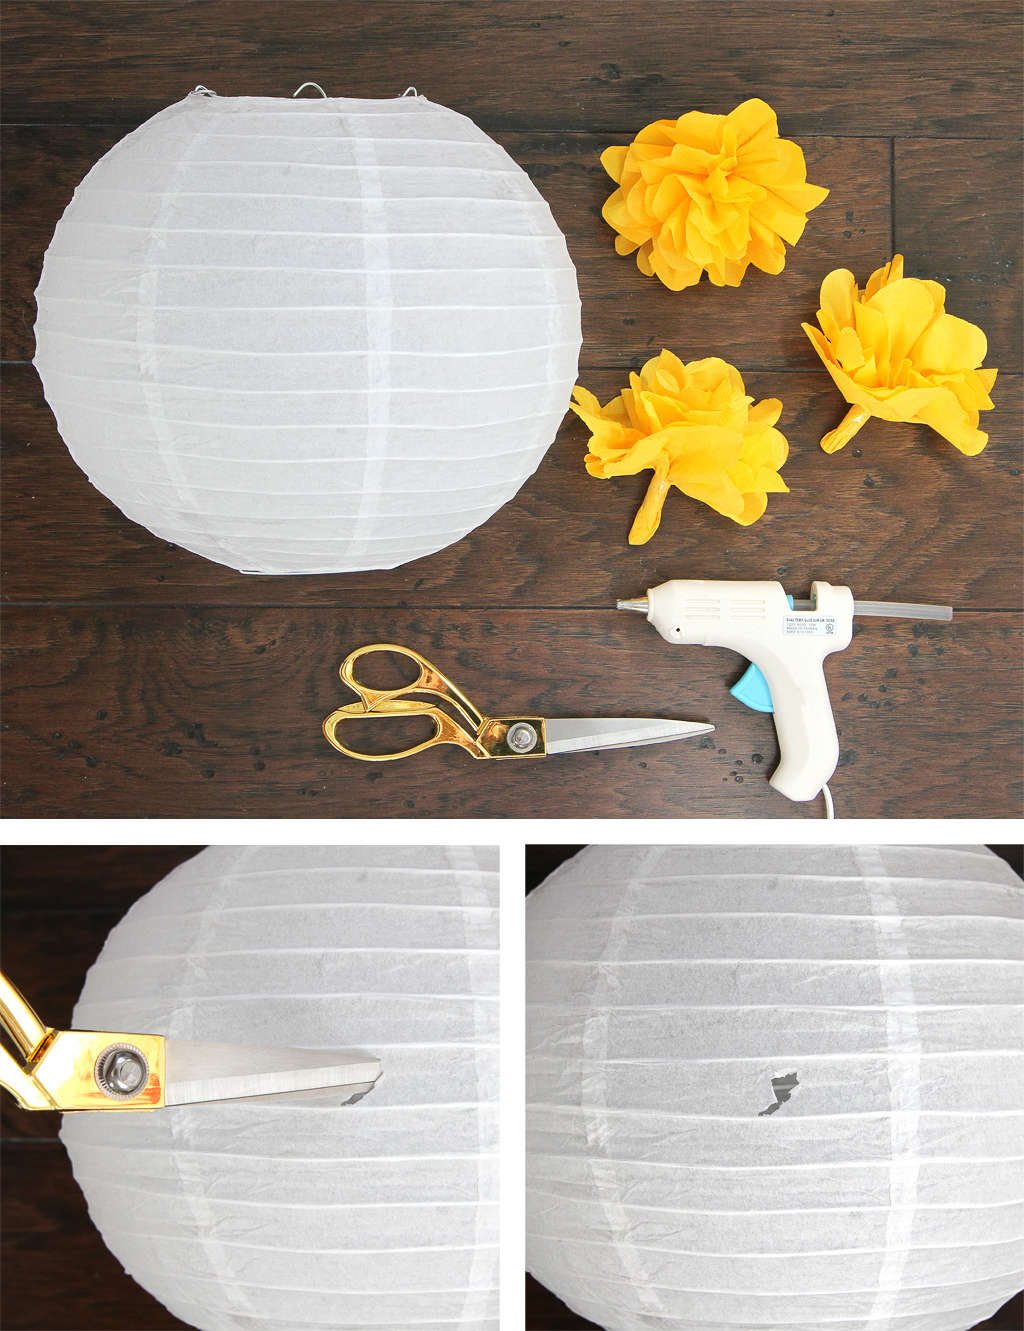 DIY Hanging Flower Globe Decoration Step 2